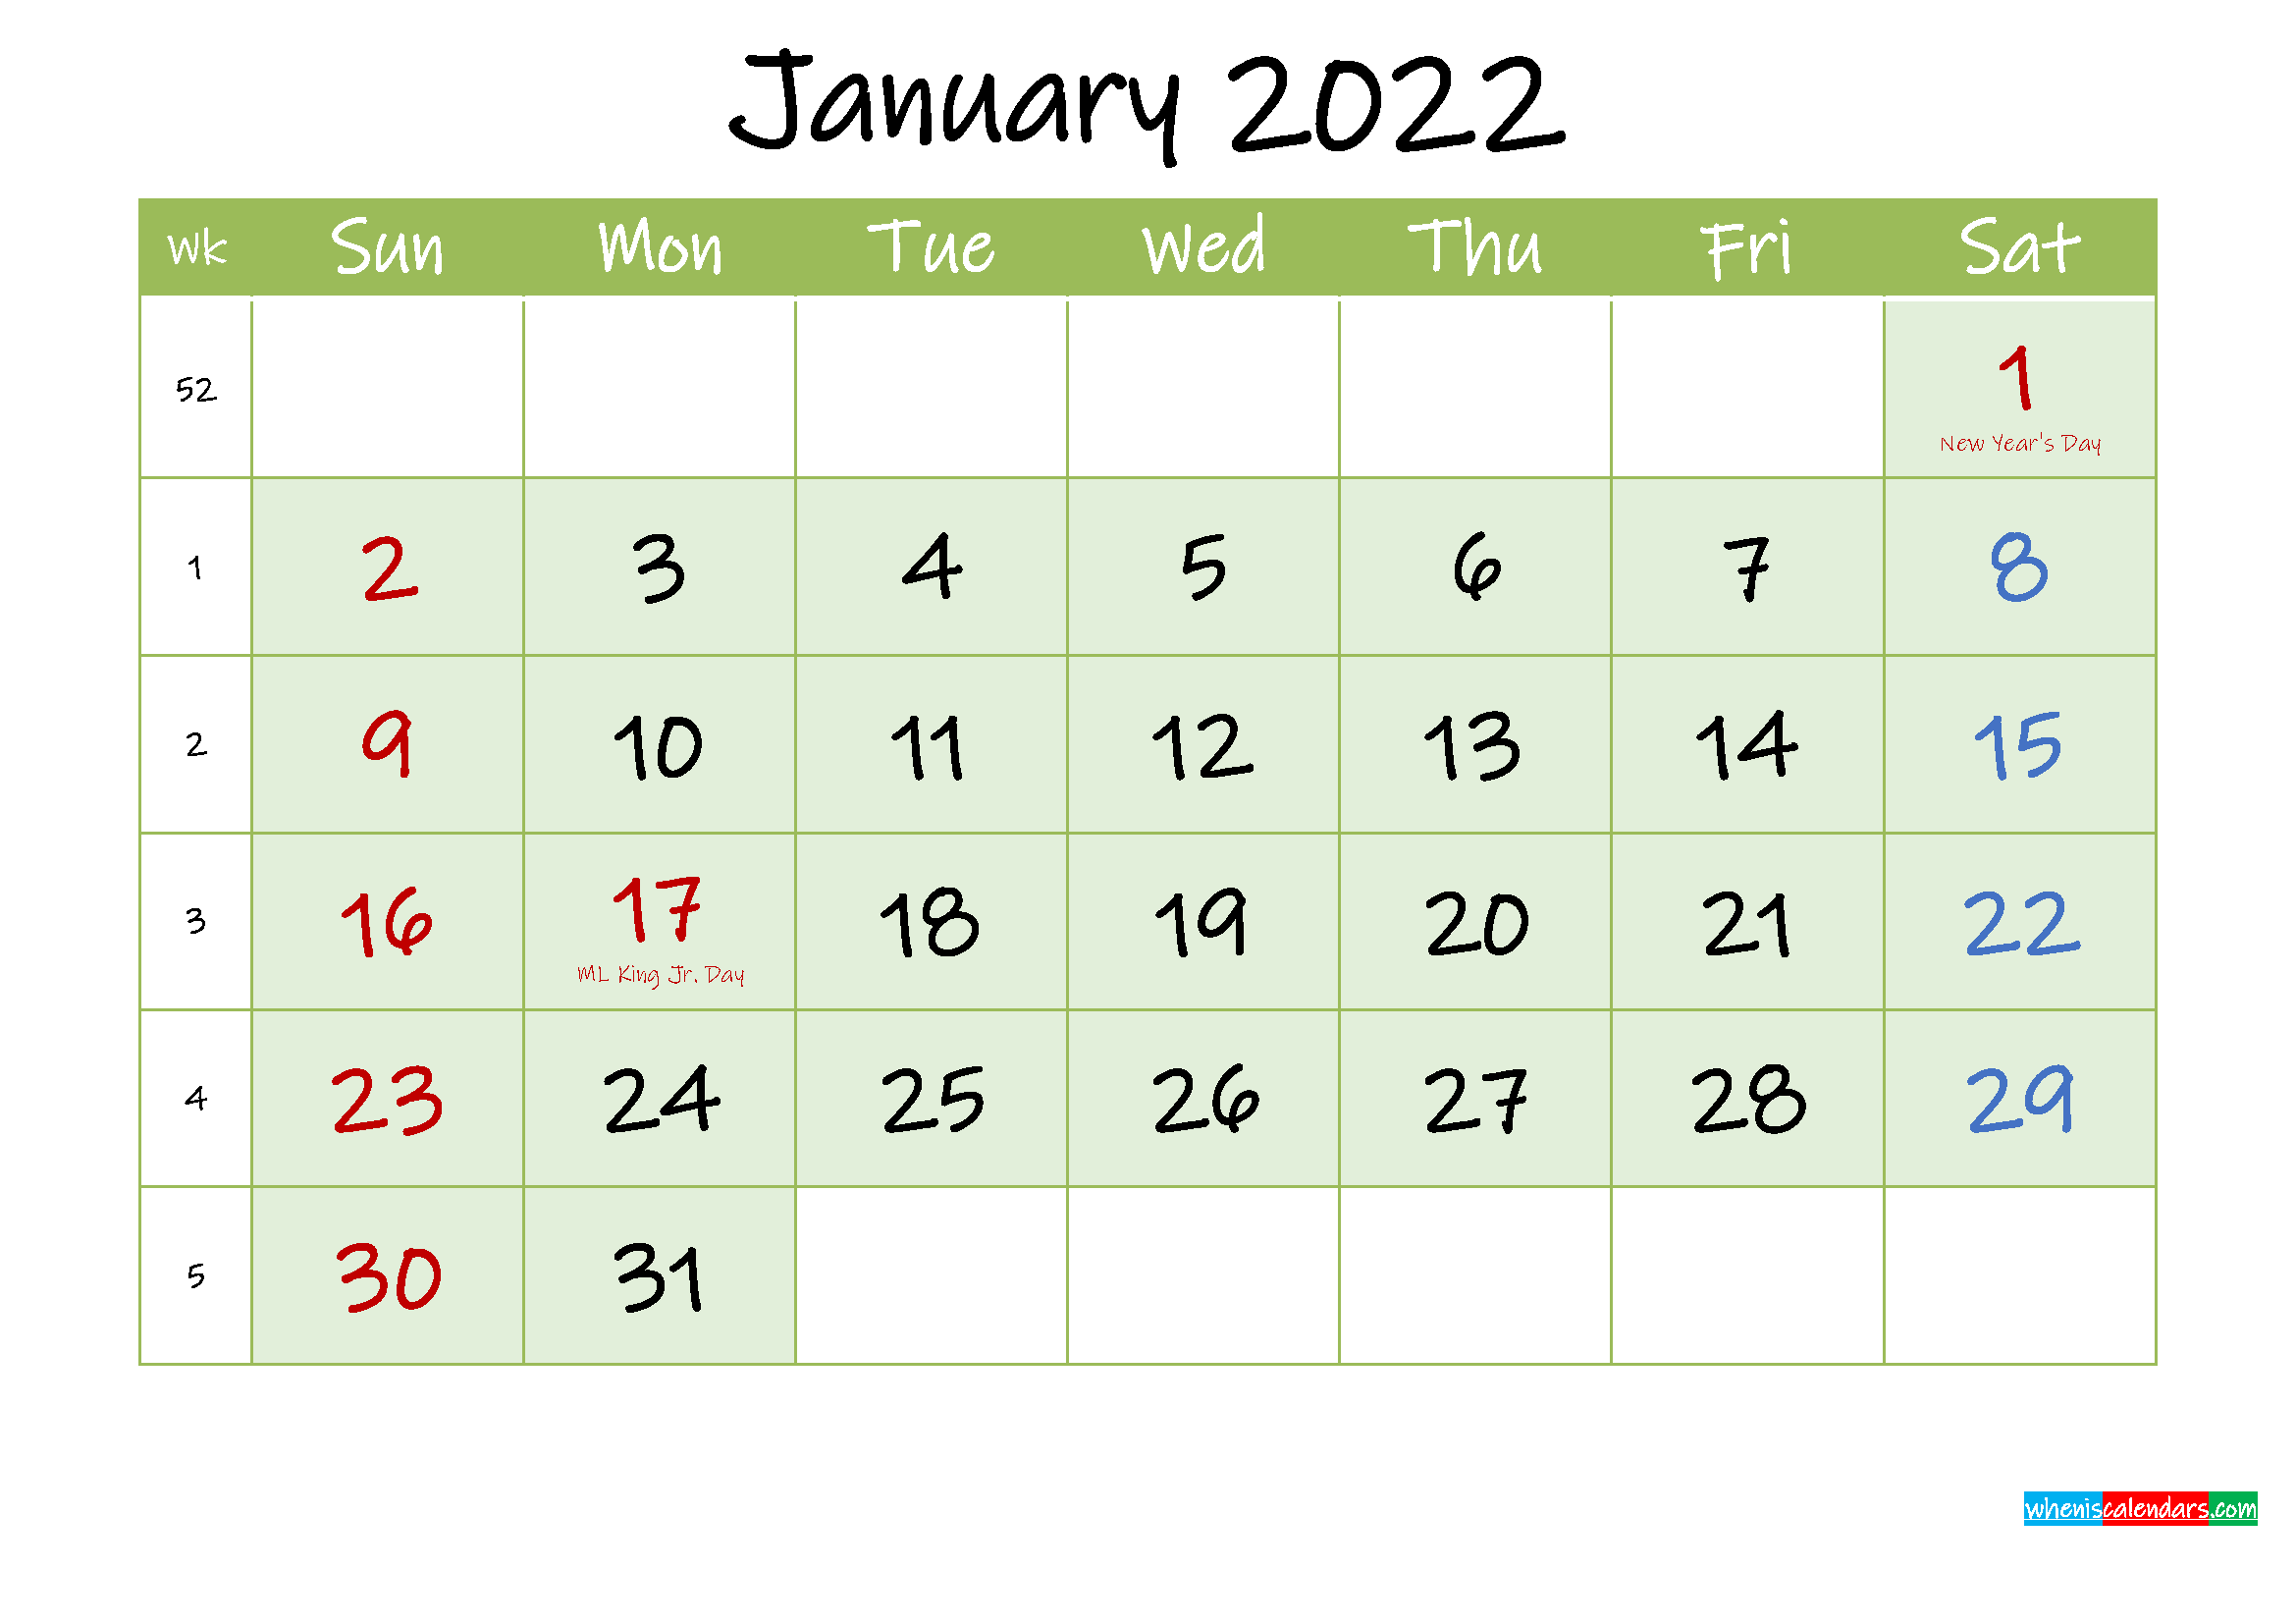 January 2022 Free Printable Calendar - Template Ink22M121 throughout Monthly Calendar January 2022